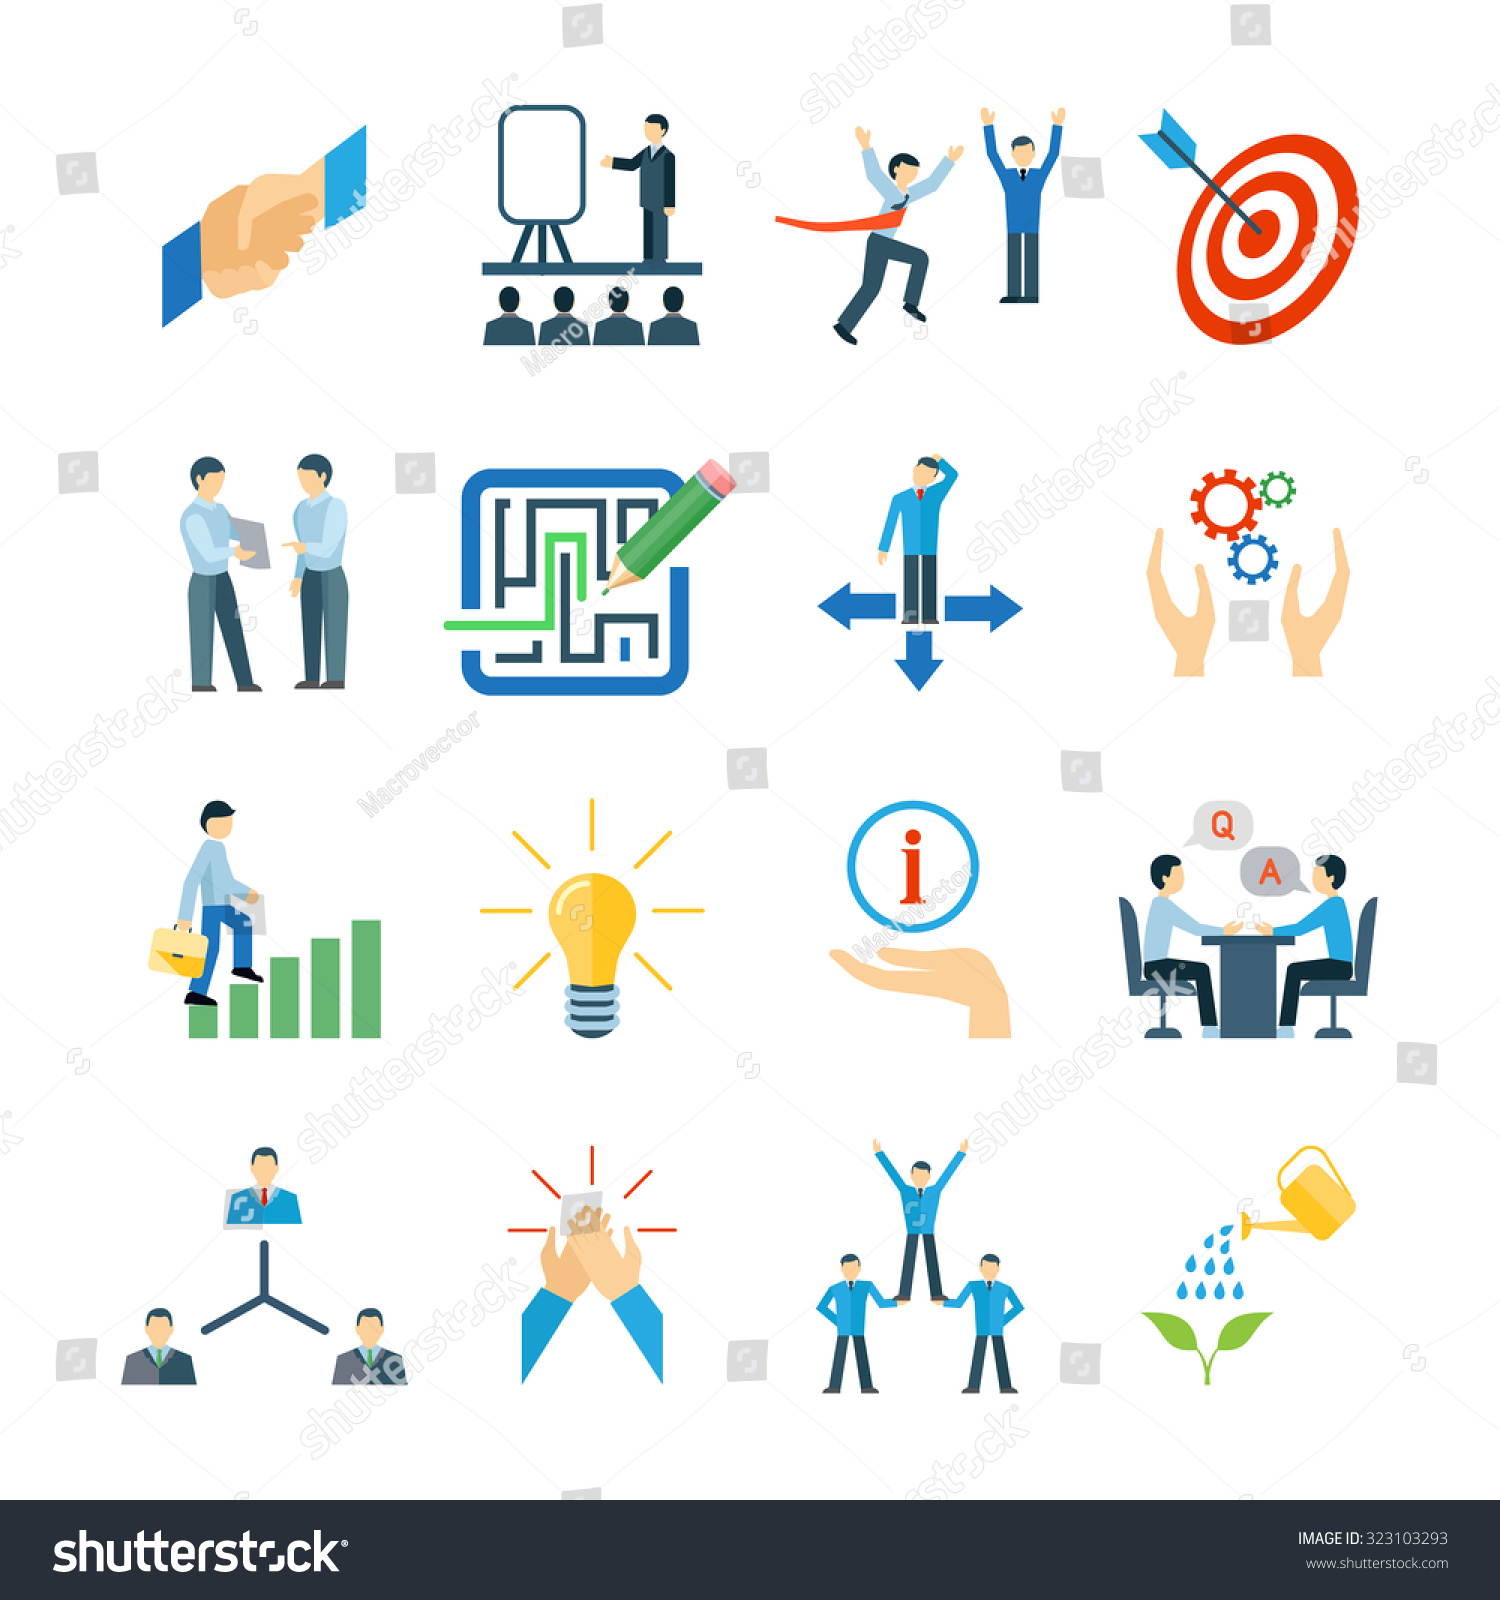 mentoring and personal skills development icons flat set isolated save to a lightbox